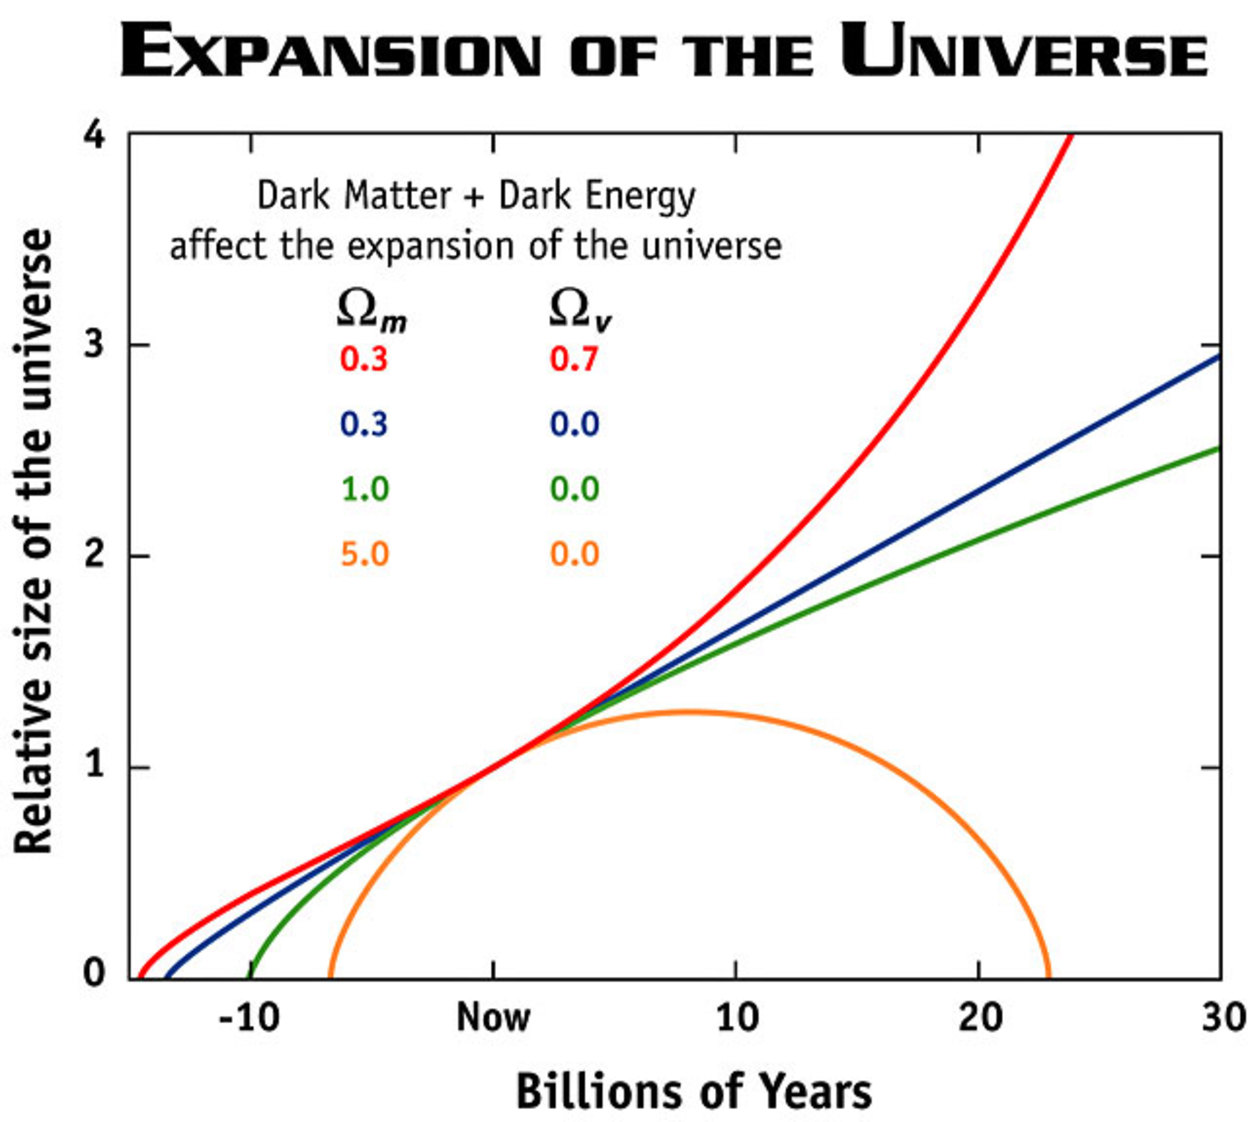 the expansion of the universe New simulation could shed light on dark energy and expansion of the universe based on einstein's theory of general relativity, new tool allows researchers to take into account ripples in spacetime the mysterious force driving the universe's accelerated expansion.